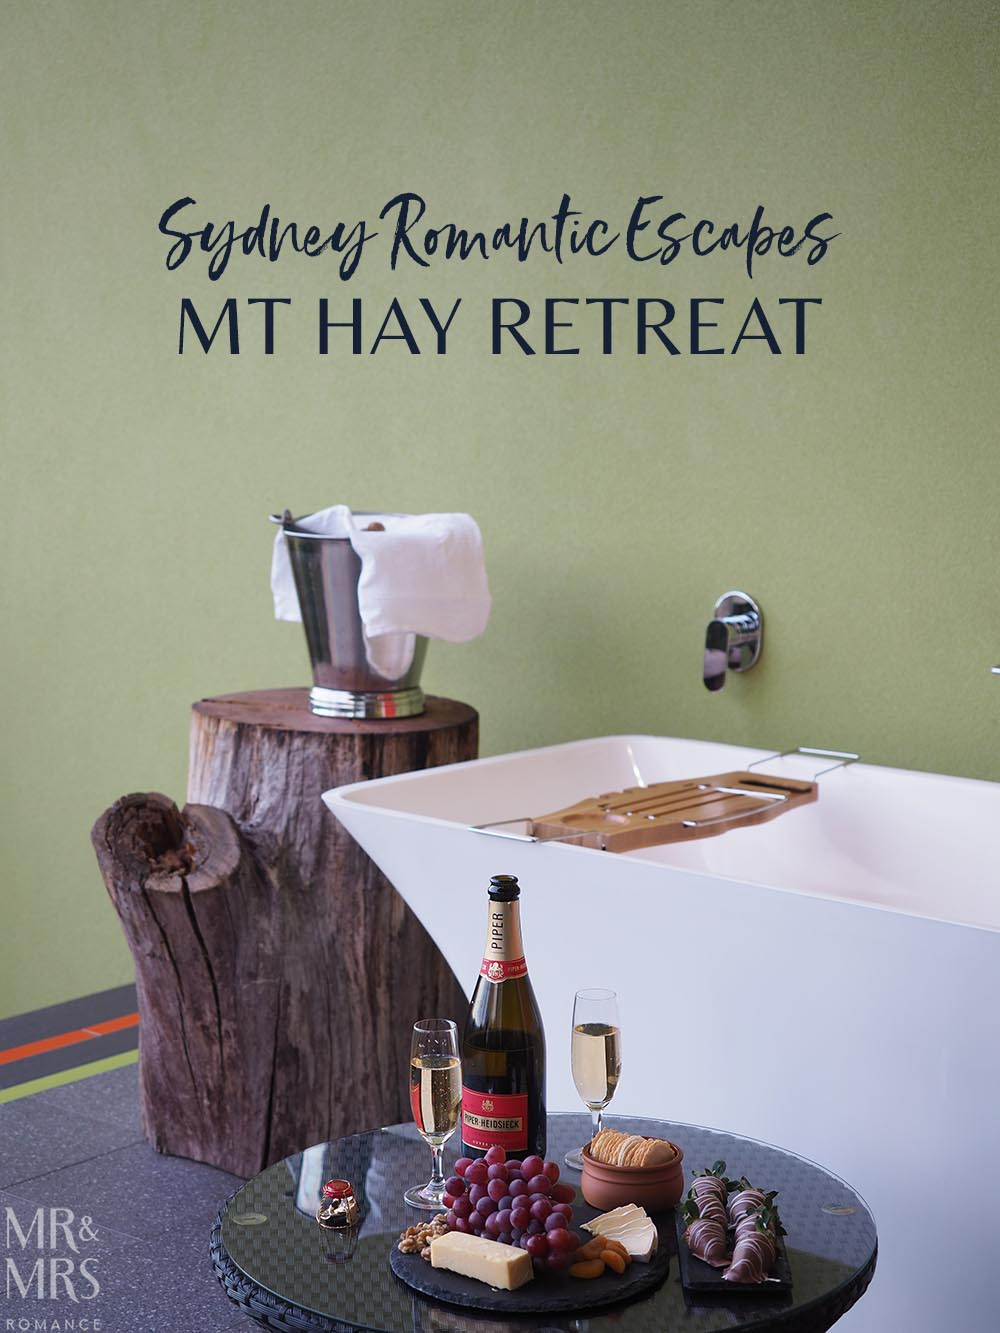 Mt Hay Retreat Berry Review